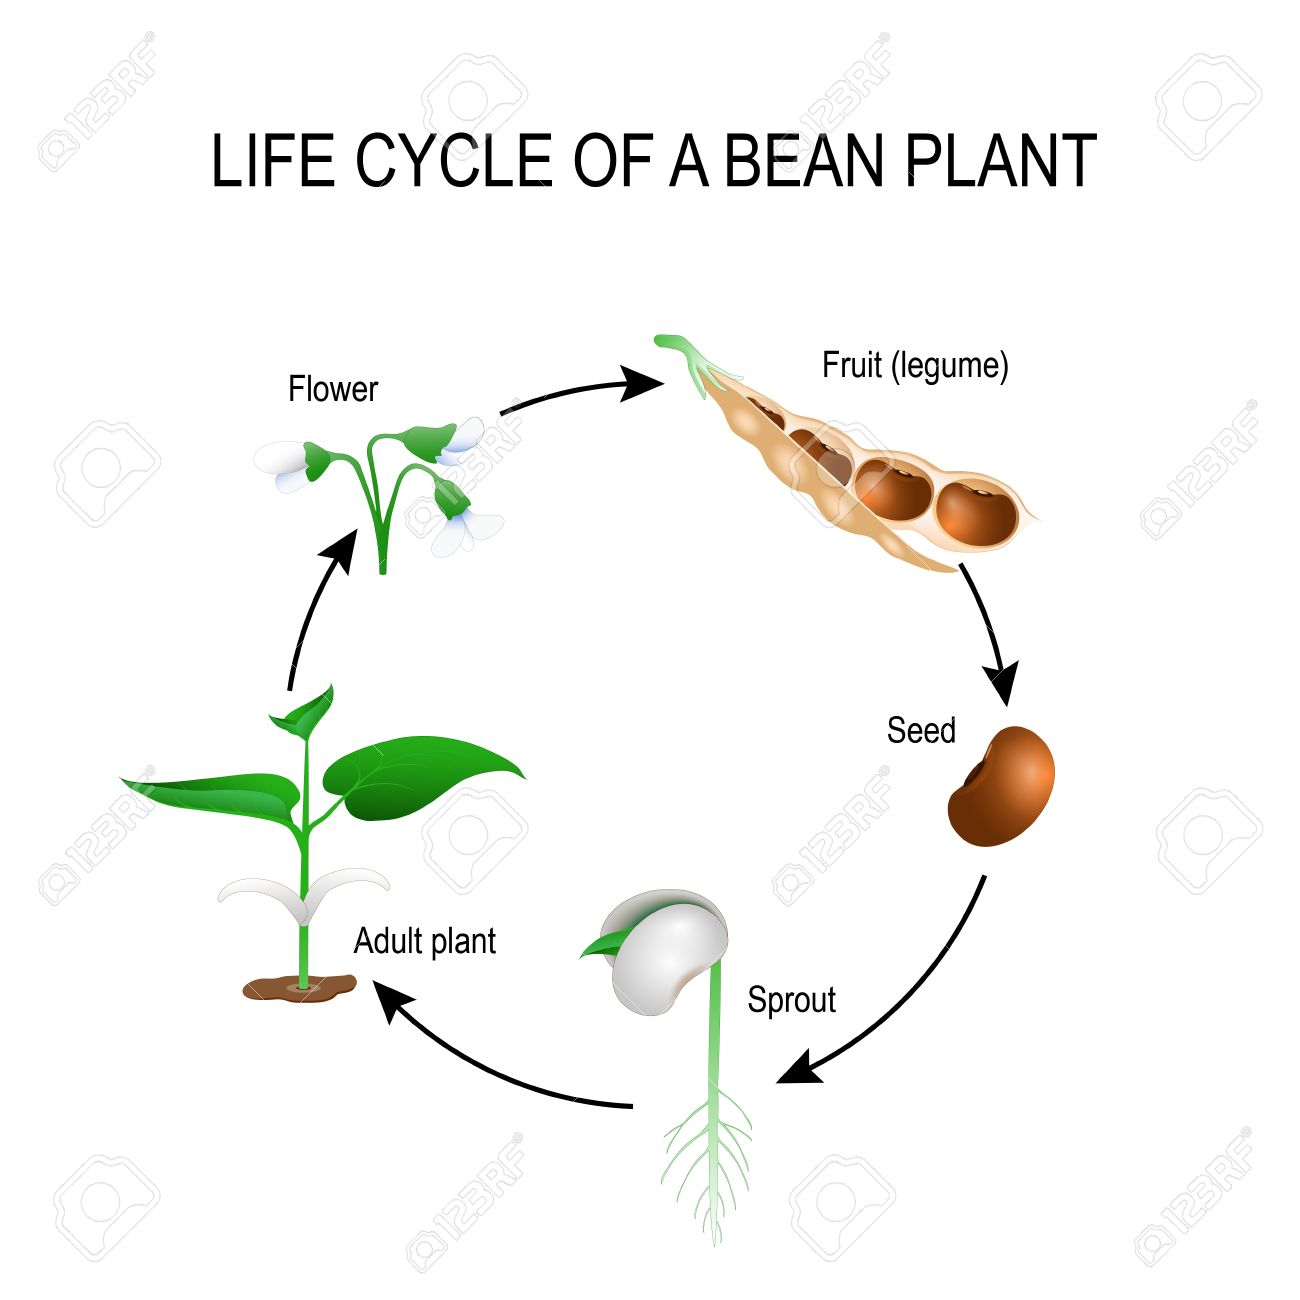 hight resolution of life cycle of a bean plant stages of growing of bean seed the most common example of life cycle from a seed to adult plant plant development